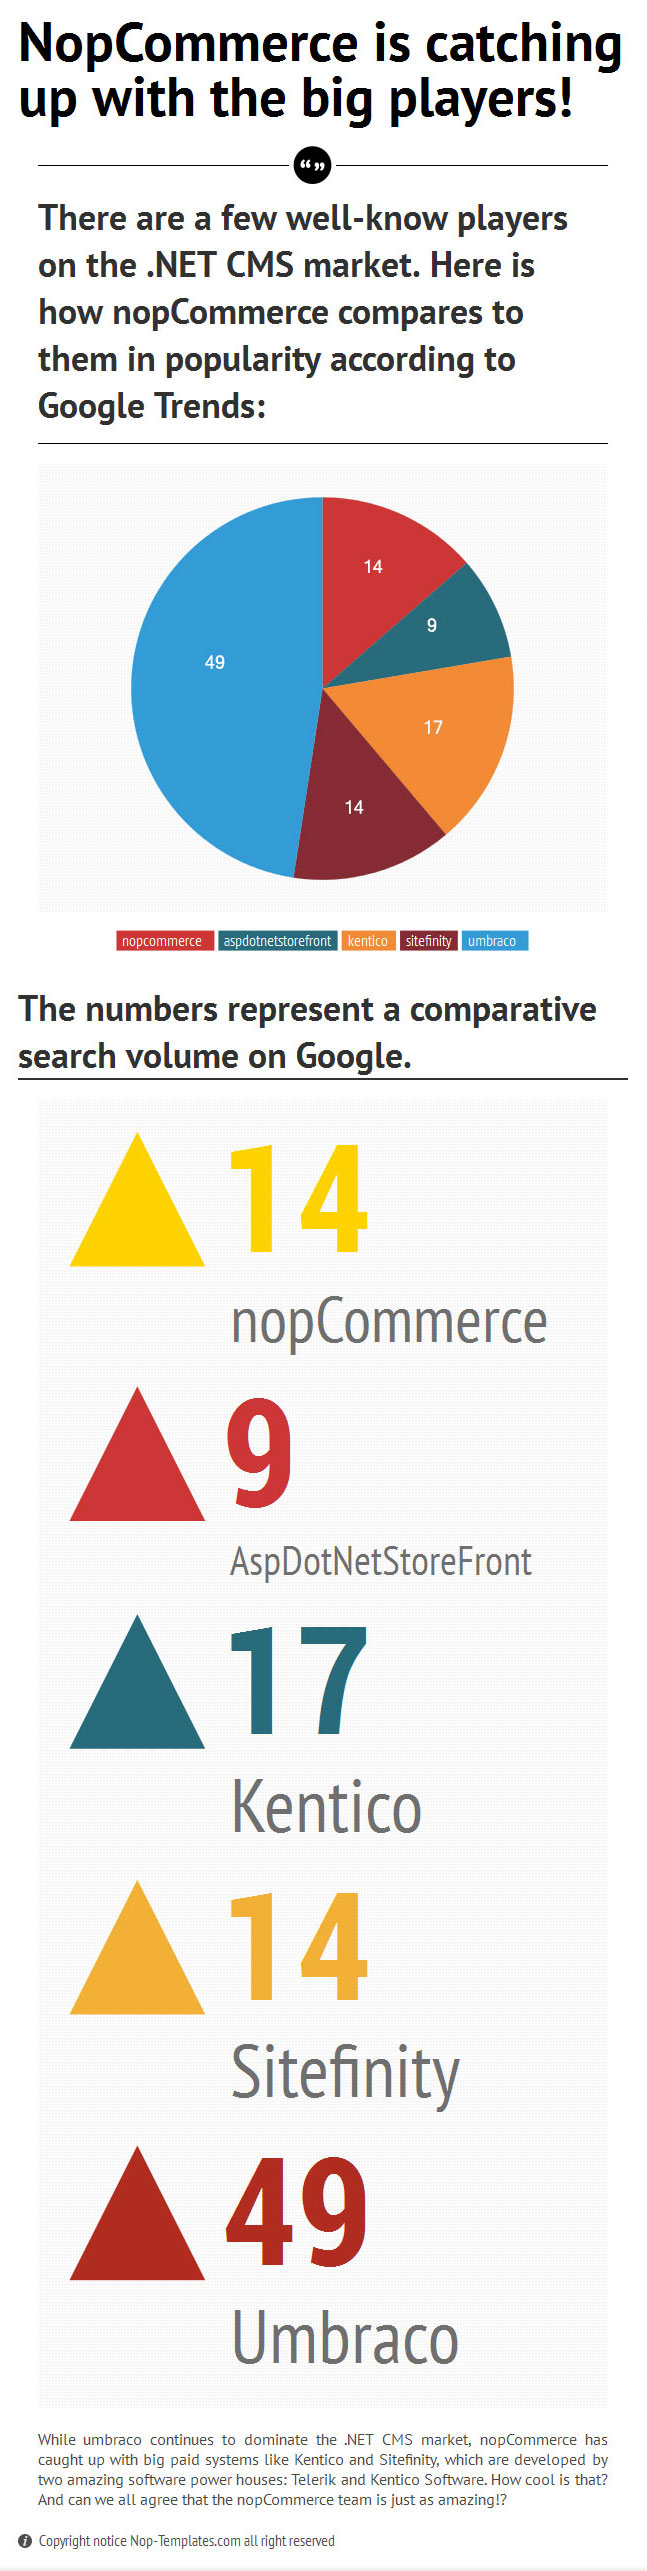 Nopcommerce is catching up with the big players for Nop commerce templates